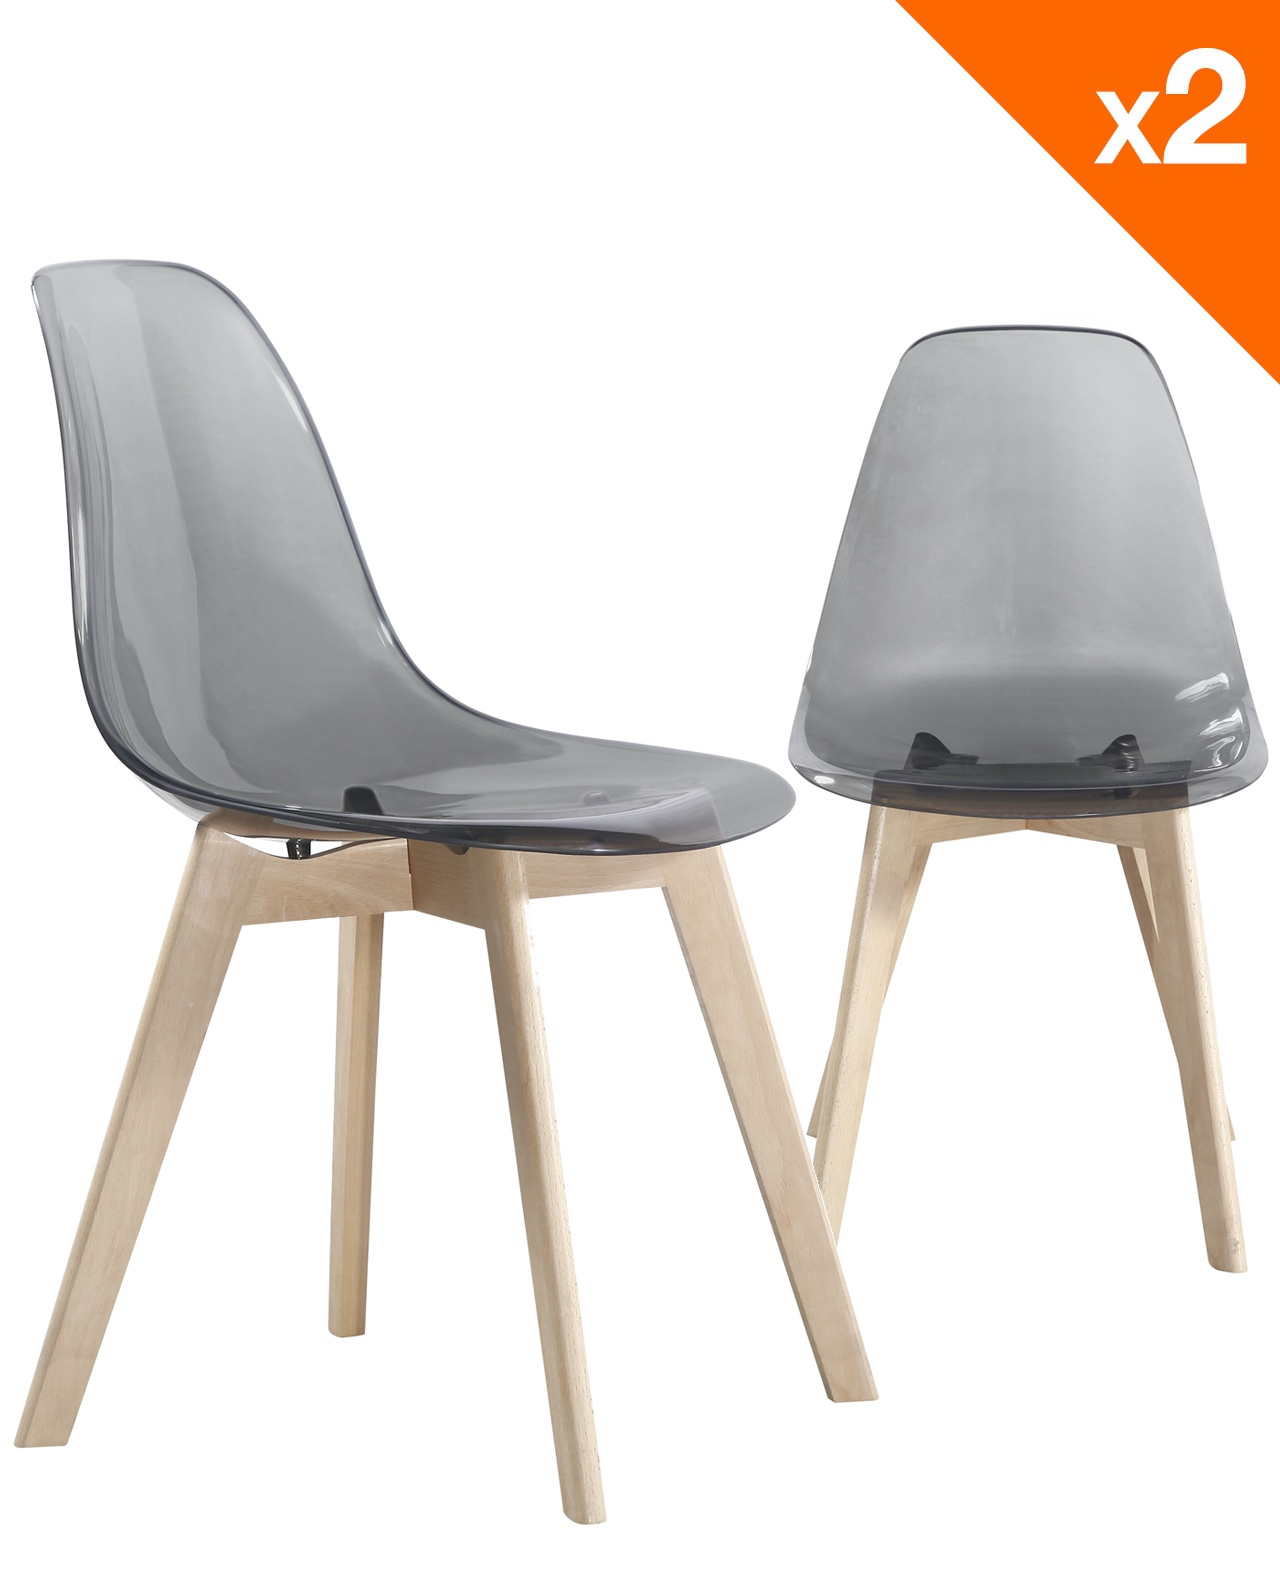 Lot Chaise Scandinave Lao Chaise Scandinave Lot De 2 Gris Fumé